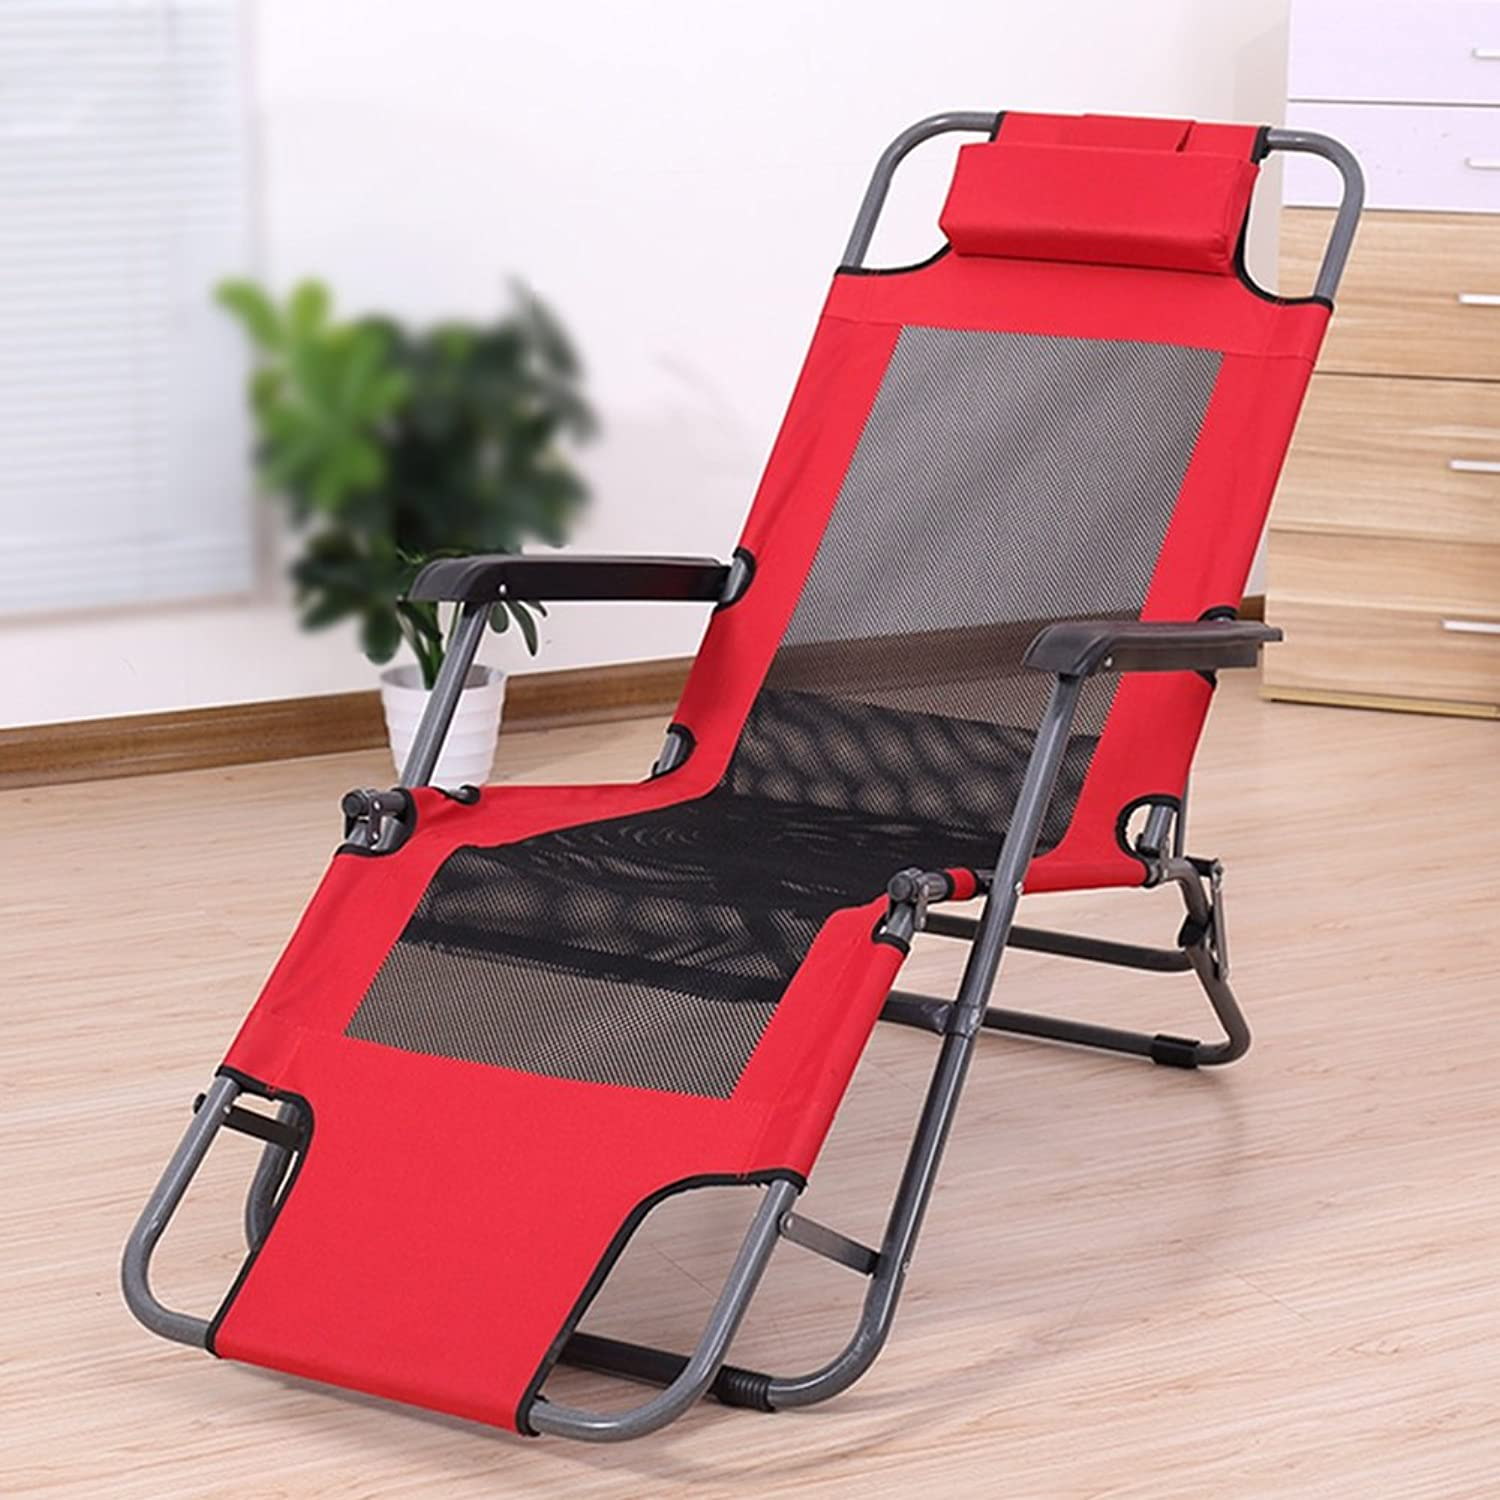 Lounge Chair Recliners Summer Recliners Balcony Folding Chair Office Lunch Break Beach Lazy Chair Portable Armchair Flat Laying Folding Bed